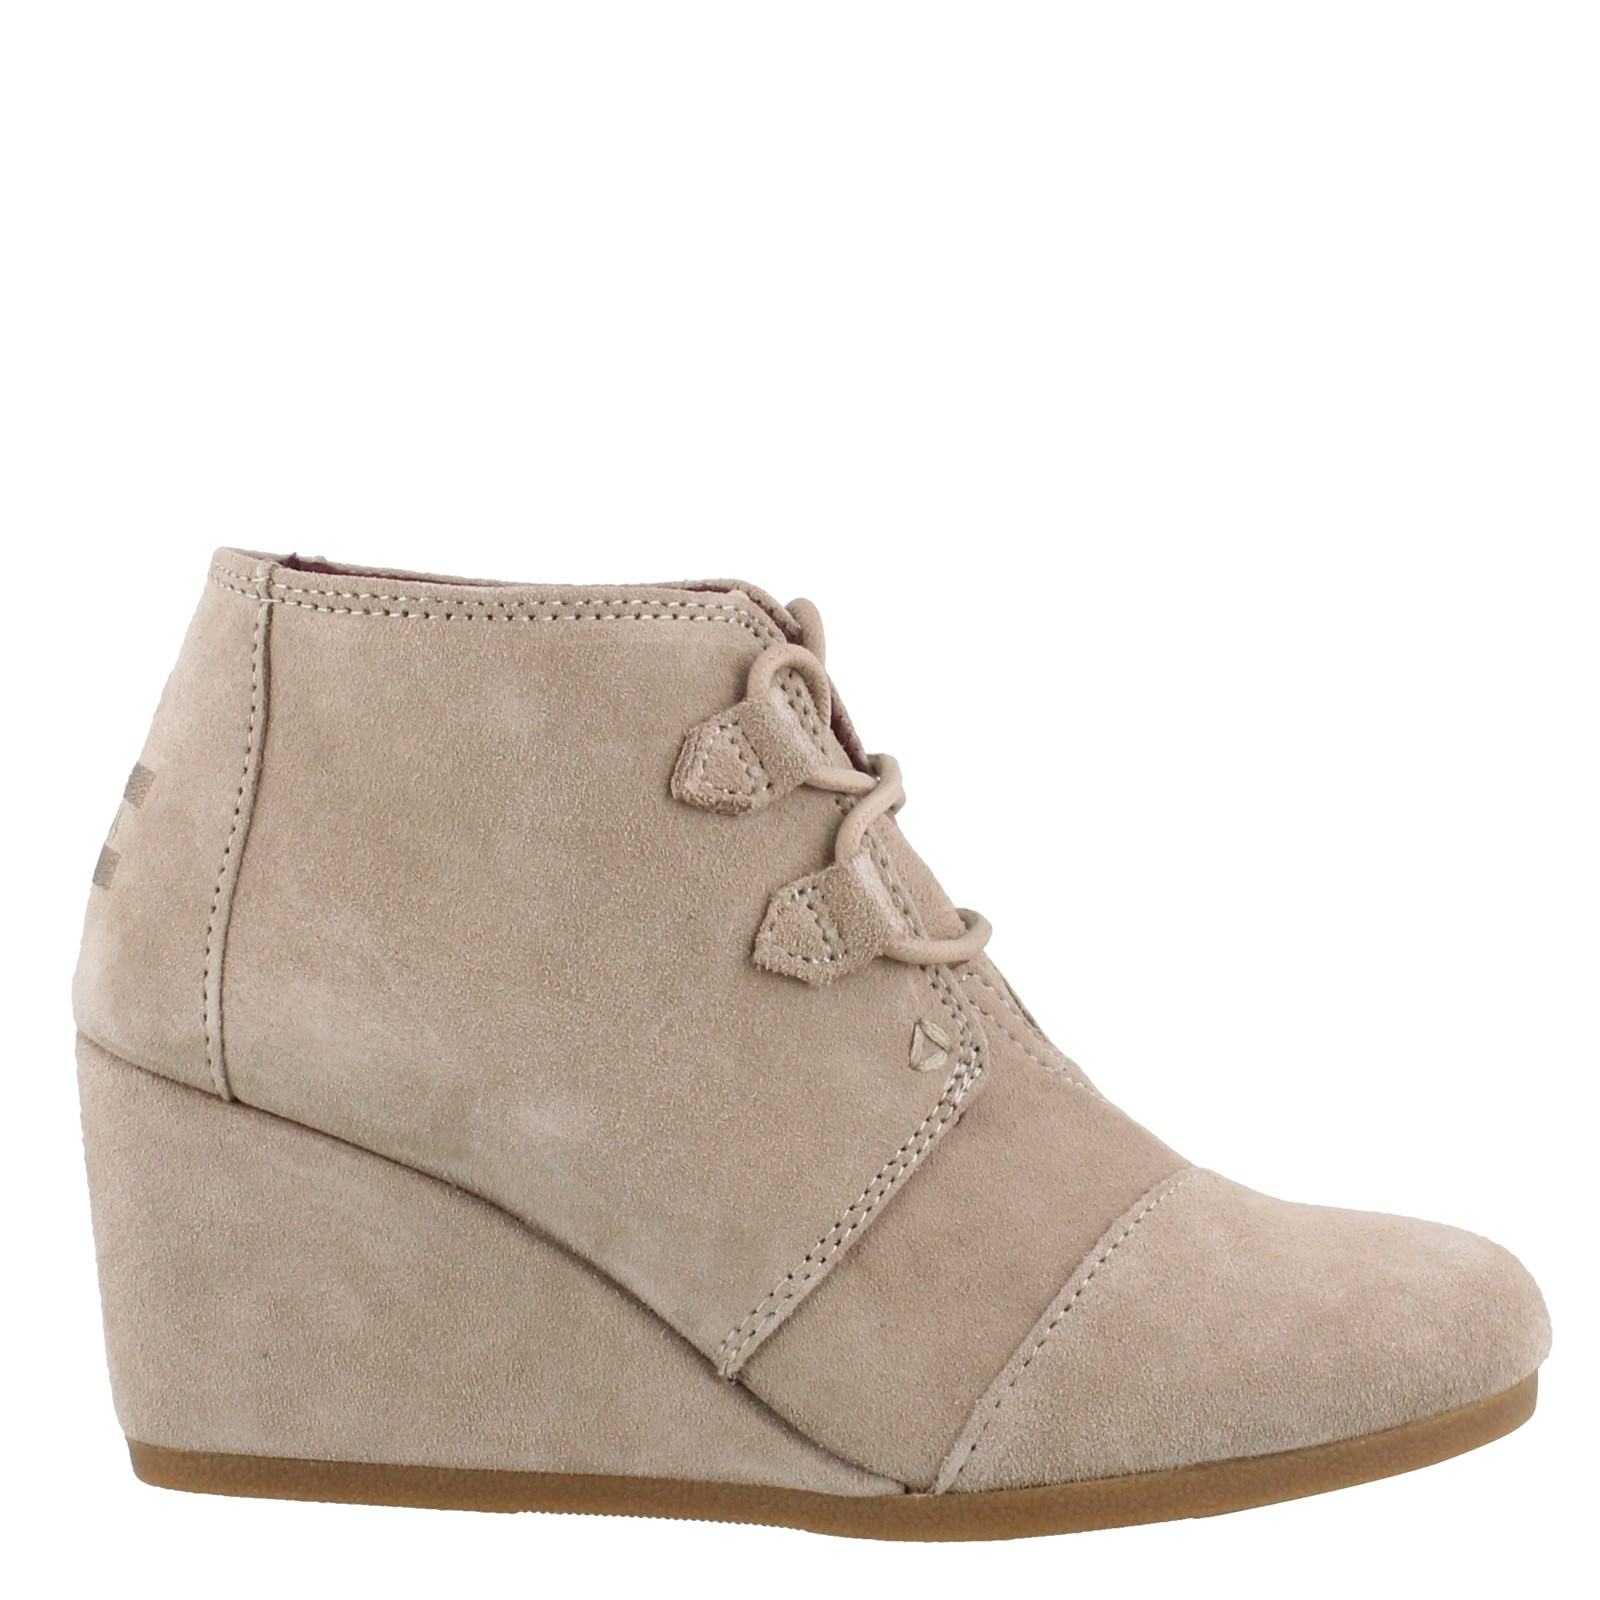 Women's Toms, Kala wedge heel boots